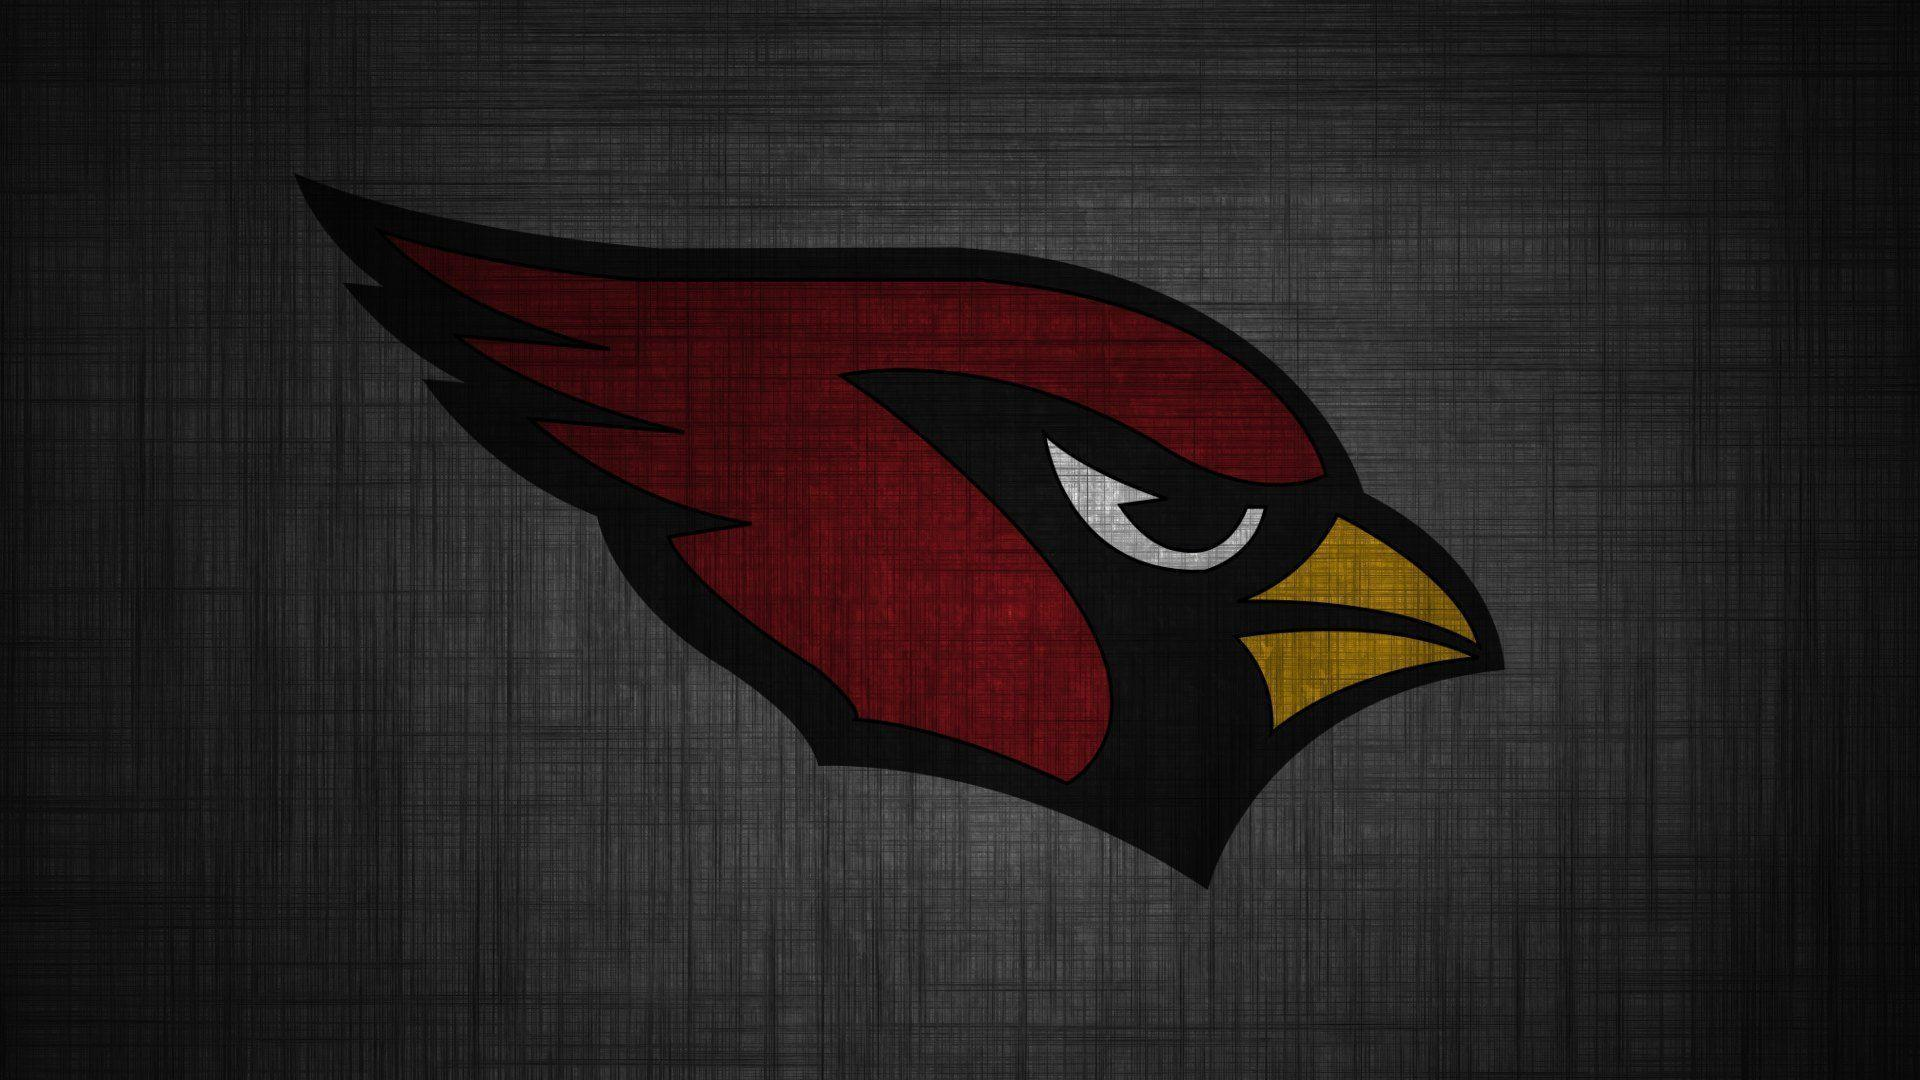 Arizona Cardinals Wallpapers - Top Free